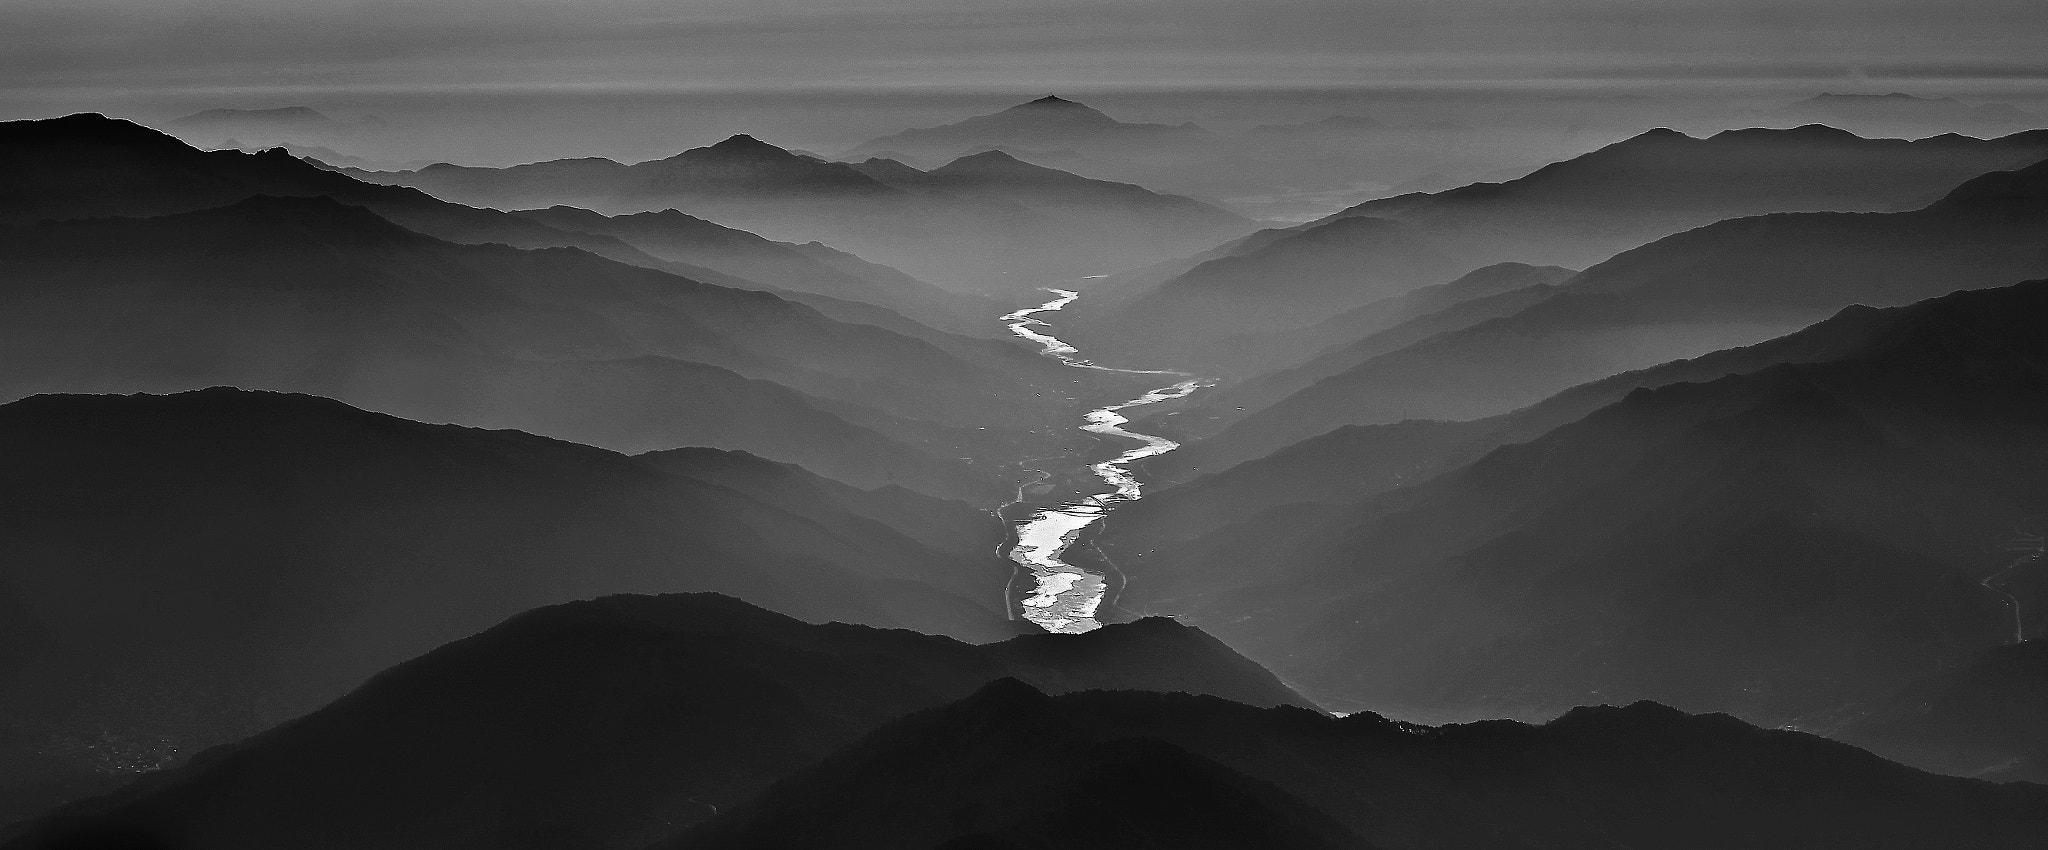 Photograph Korea's mountains, rivers by Jeong-Keun Kim on 500px